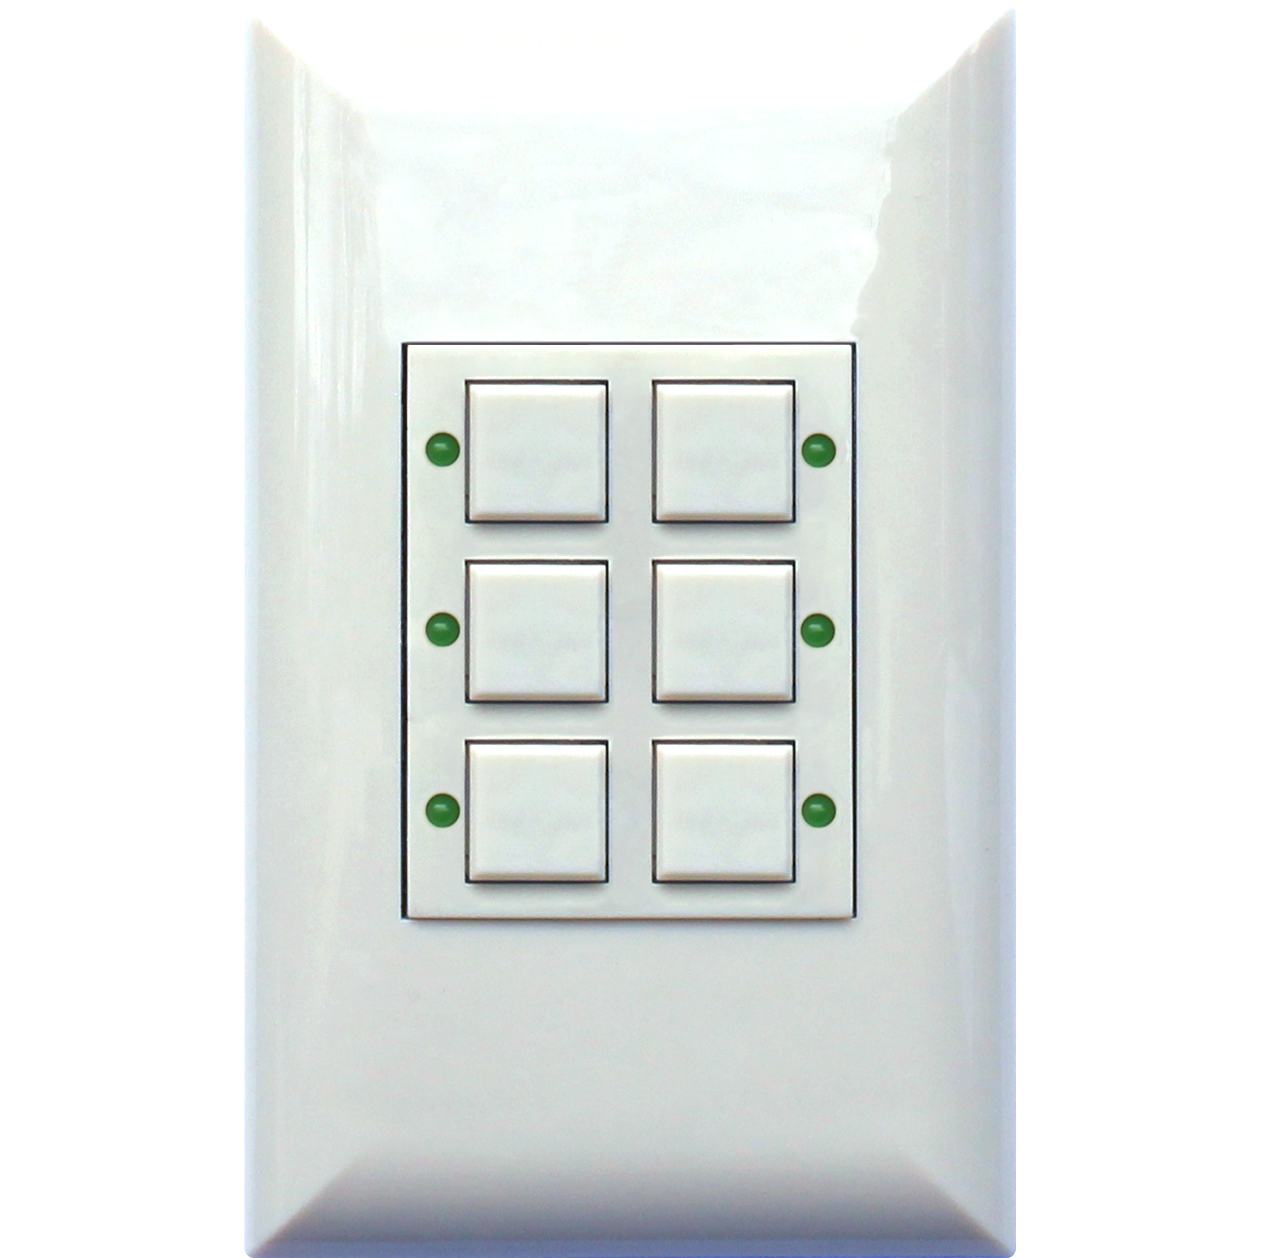 Classic series wall switch touch plate lighting controls touch clas1 0606 wht g aloadofball Gallery